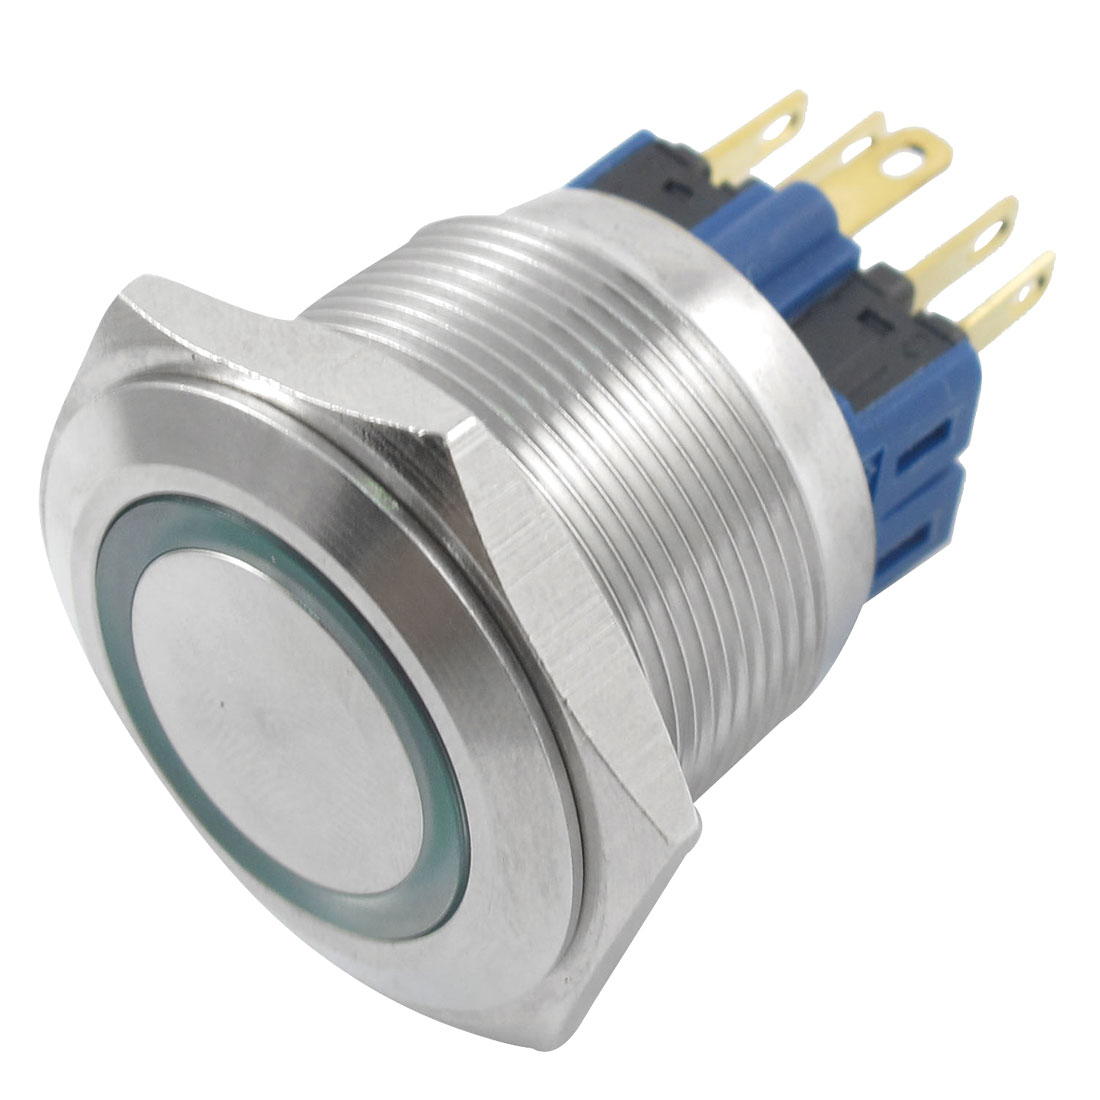 24V Green Lamp Momentary Stainless Steel 22mm Dia Push Button Switch